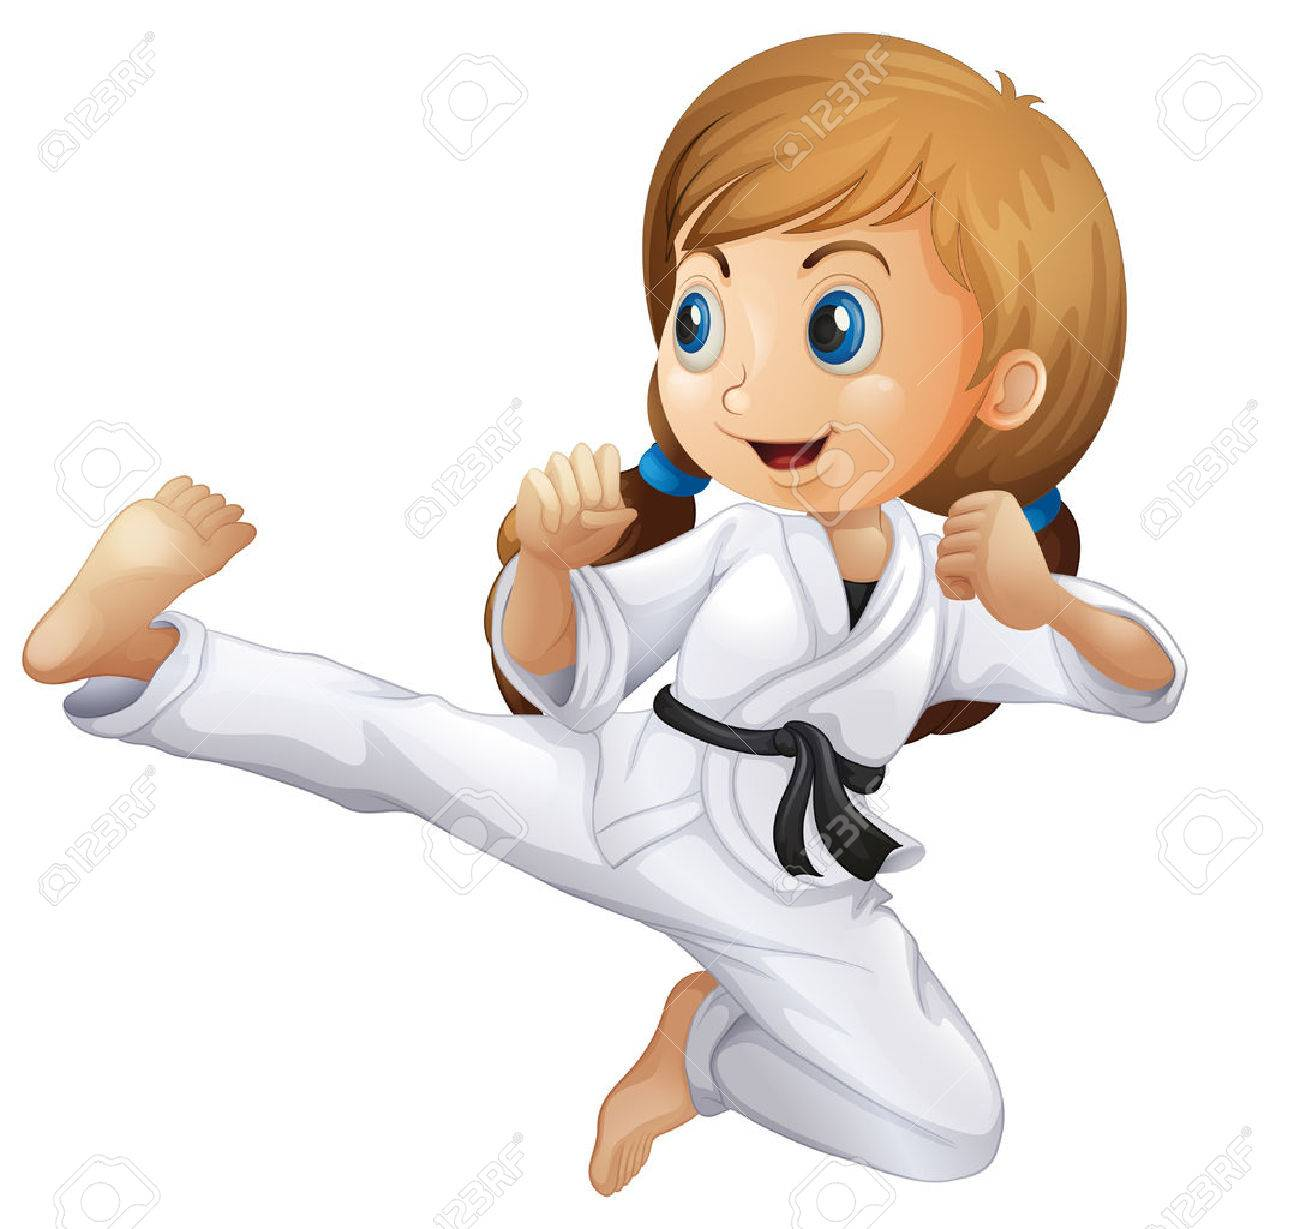 Illustration of a young girl doing karate on a white background - 28203333